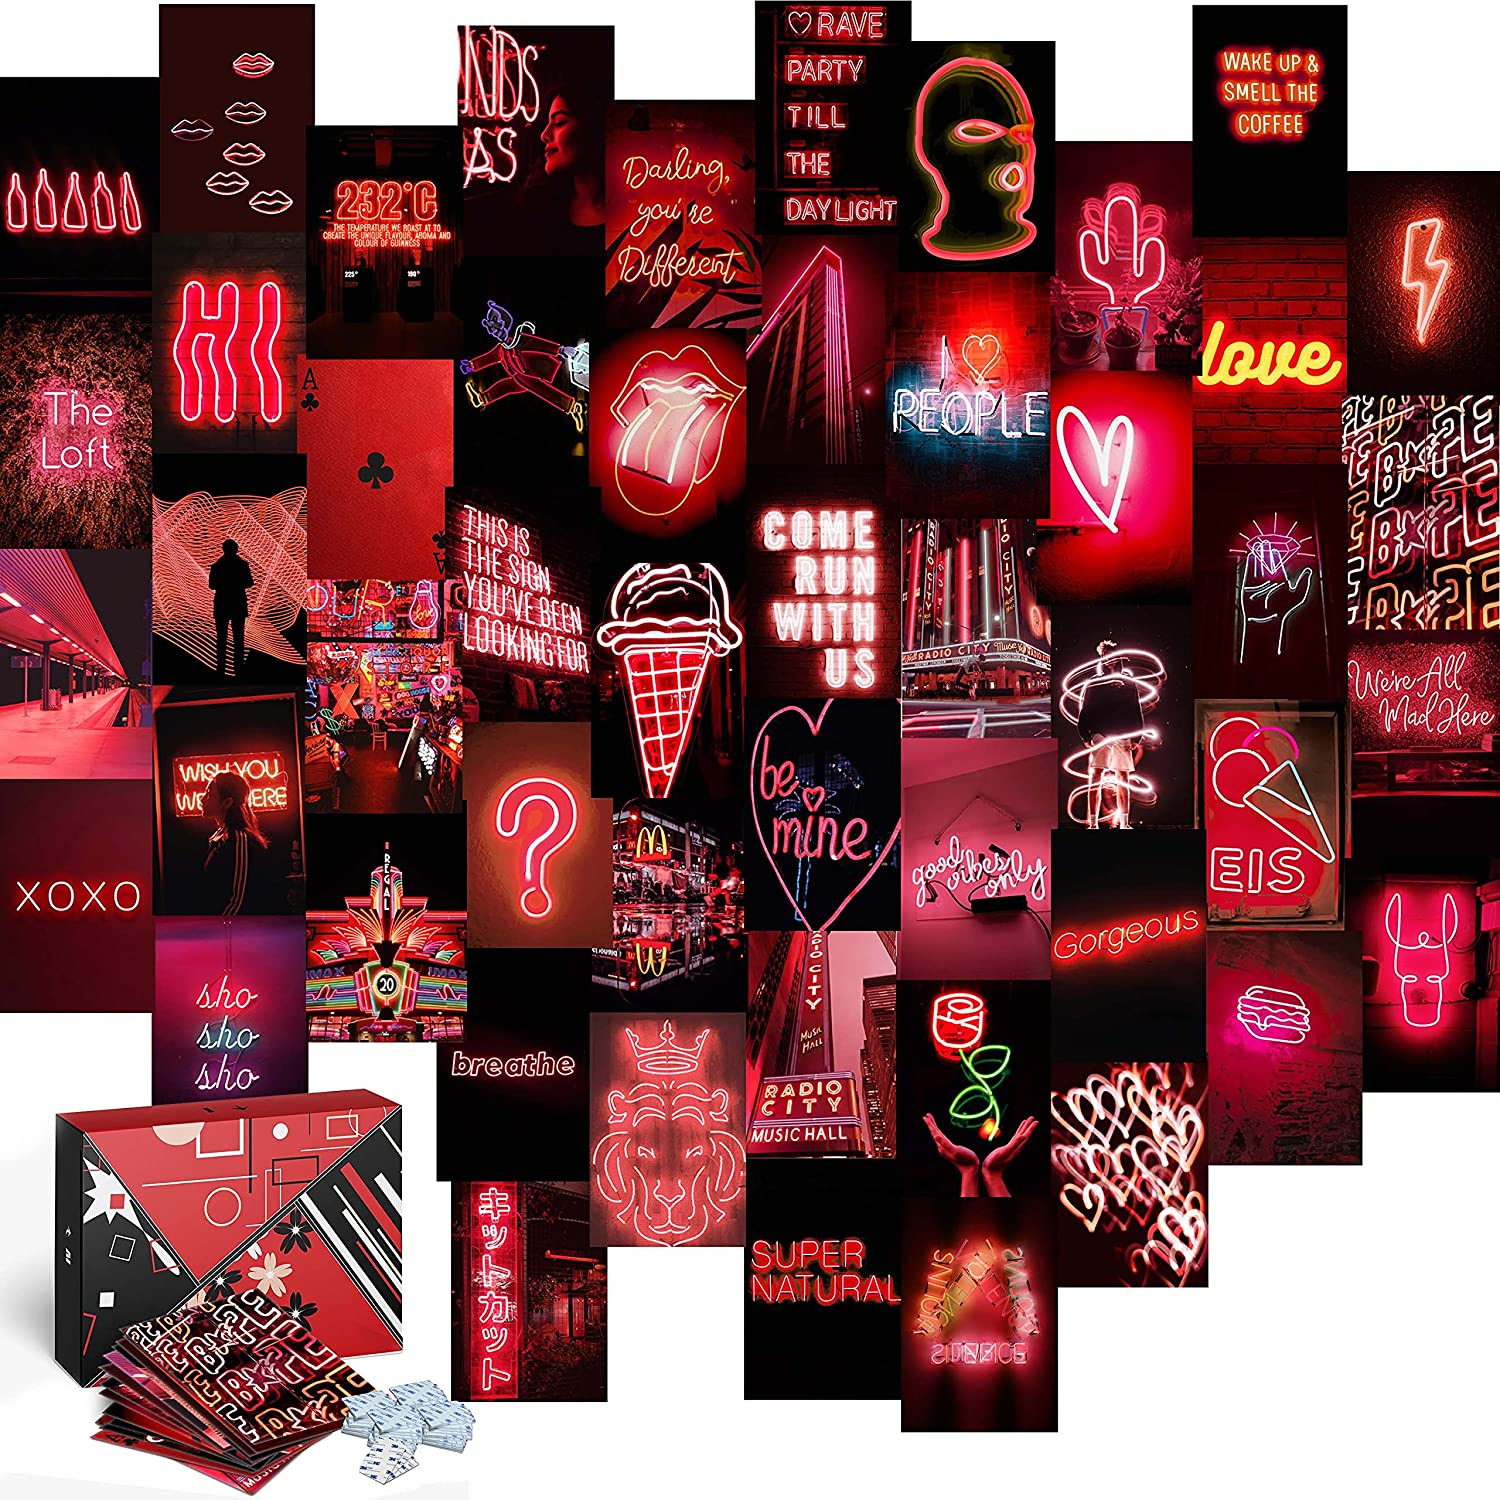 KOLL DECOR Red Aesthetic Room Decor Wall Collage Aesthetic - 50 Set 4''x6'' Prints Neon Dark Red photo Wall Collage Kit Decoration Pictures for Teen Girls Academia Bedroom Posters